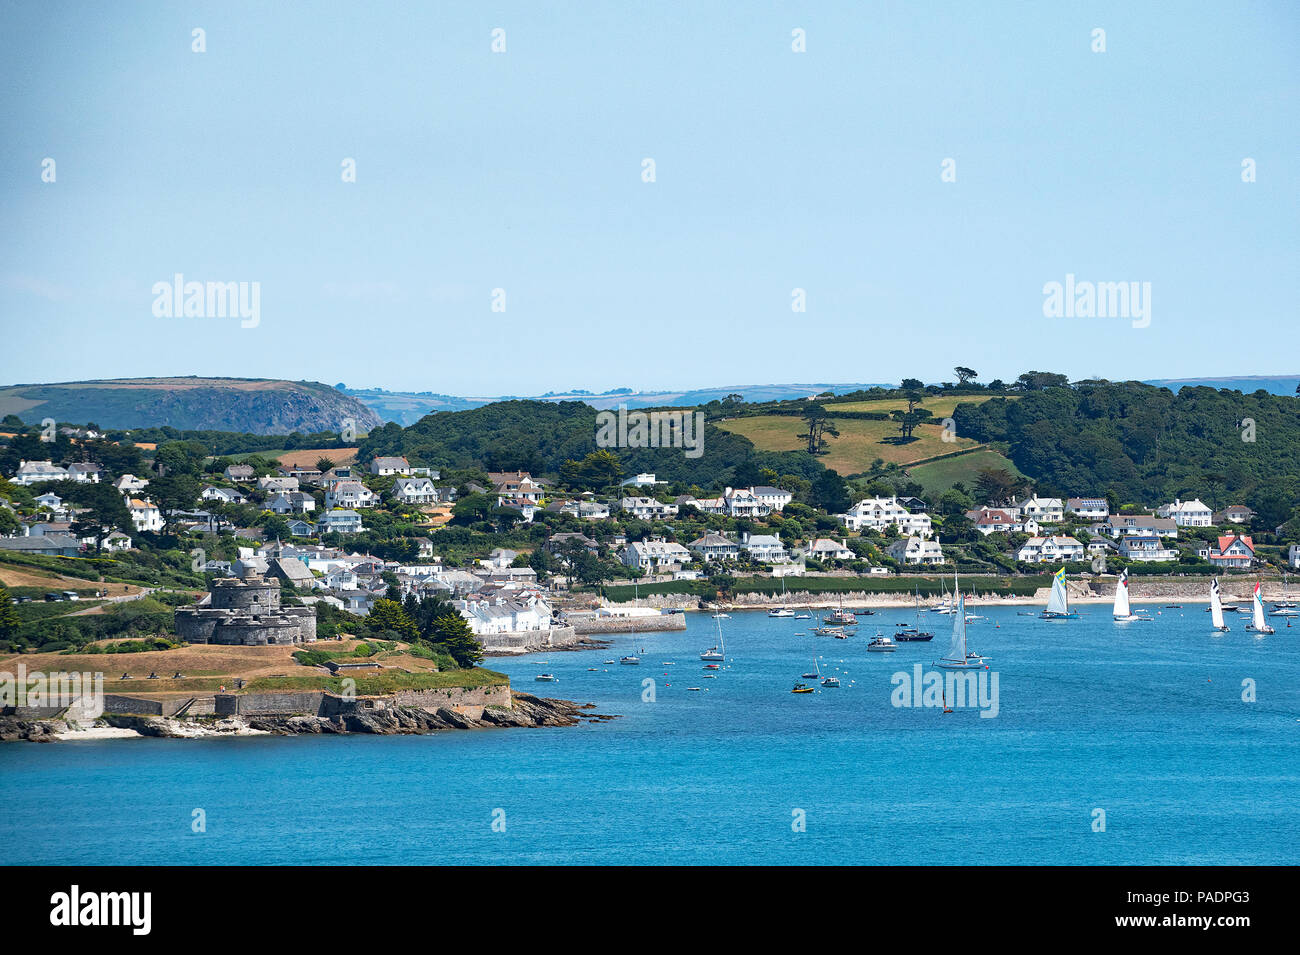 view across the carrick roads to st.mawes from falmouth, cornwall, england, britain, uk. - Stock Image